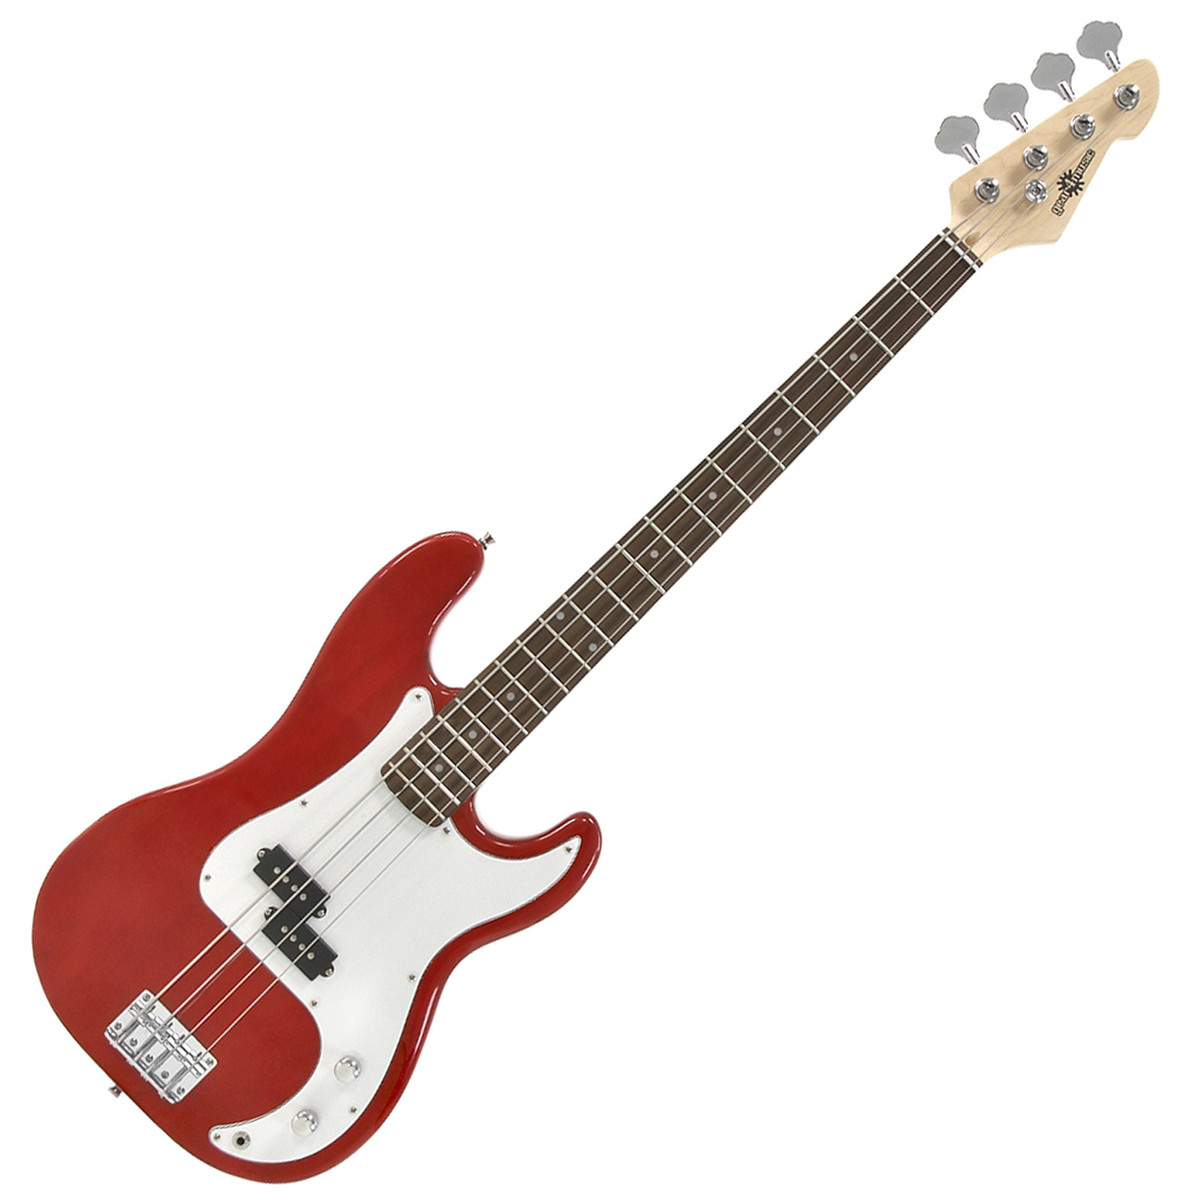 LA Bass Guitar By Gear4music Red B Stock At Gear4music